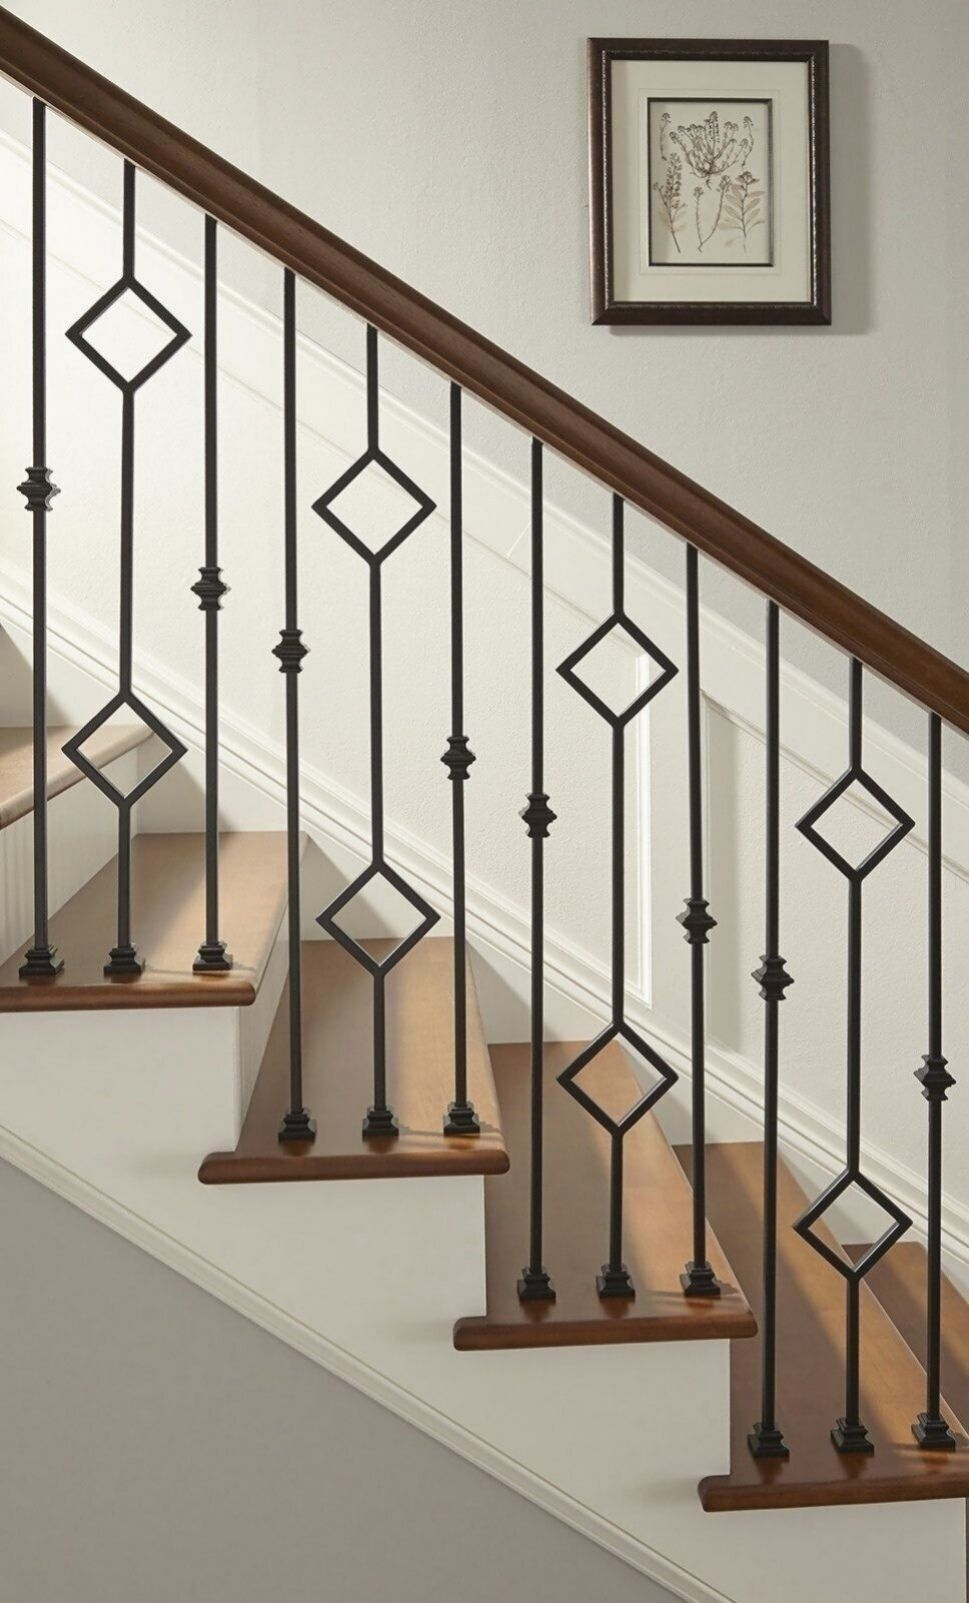 Media gallery from crown heritage stair company - crown ...